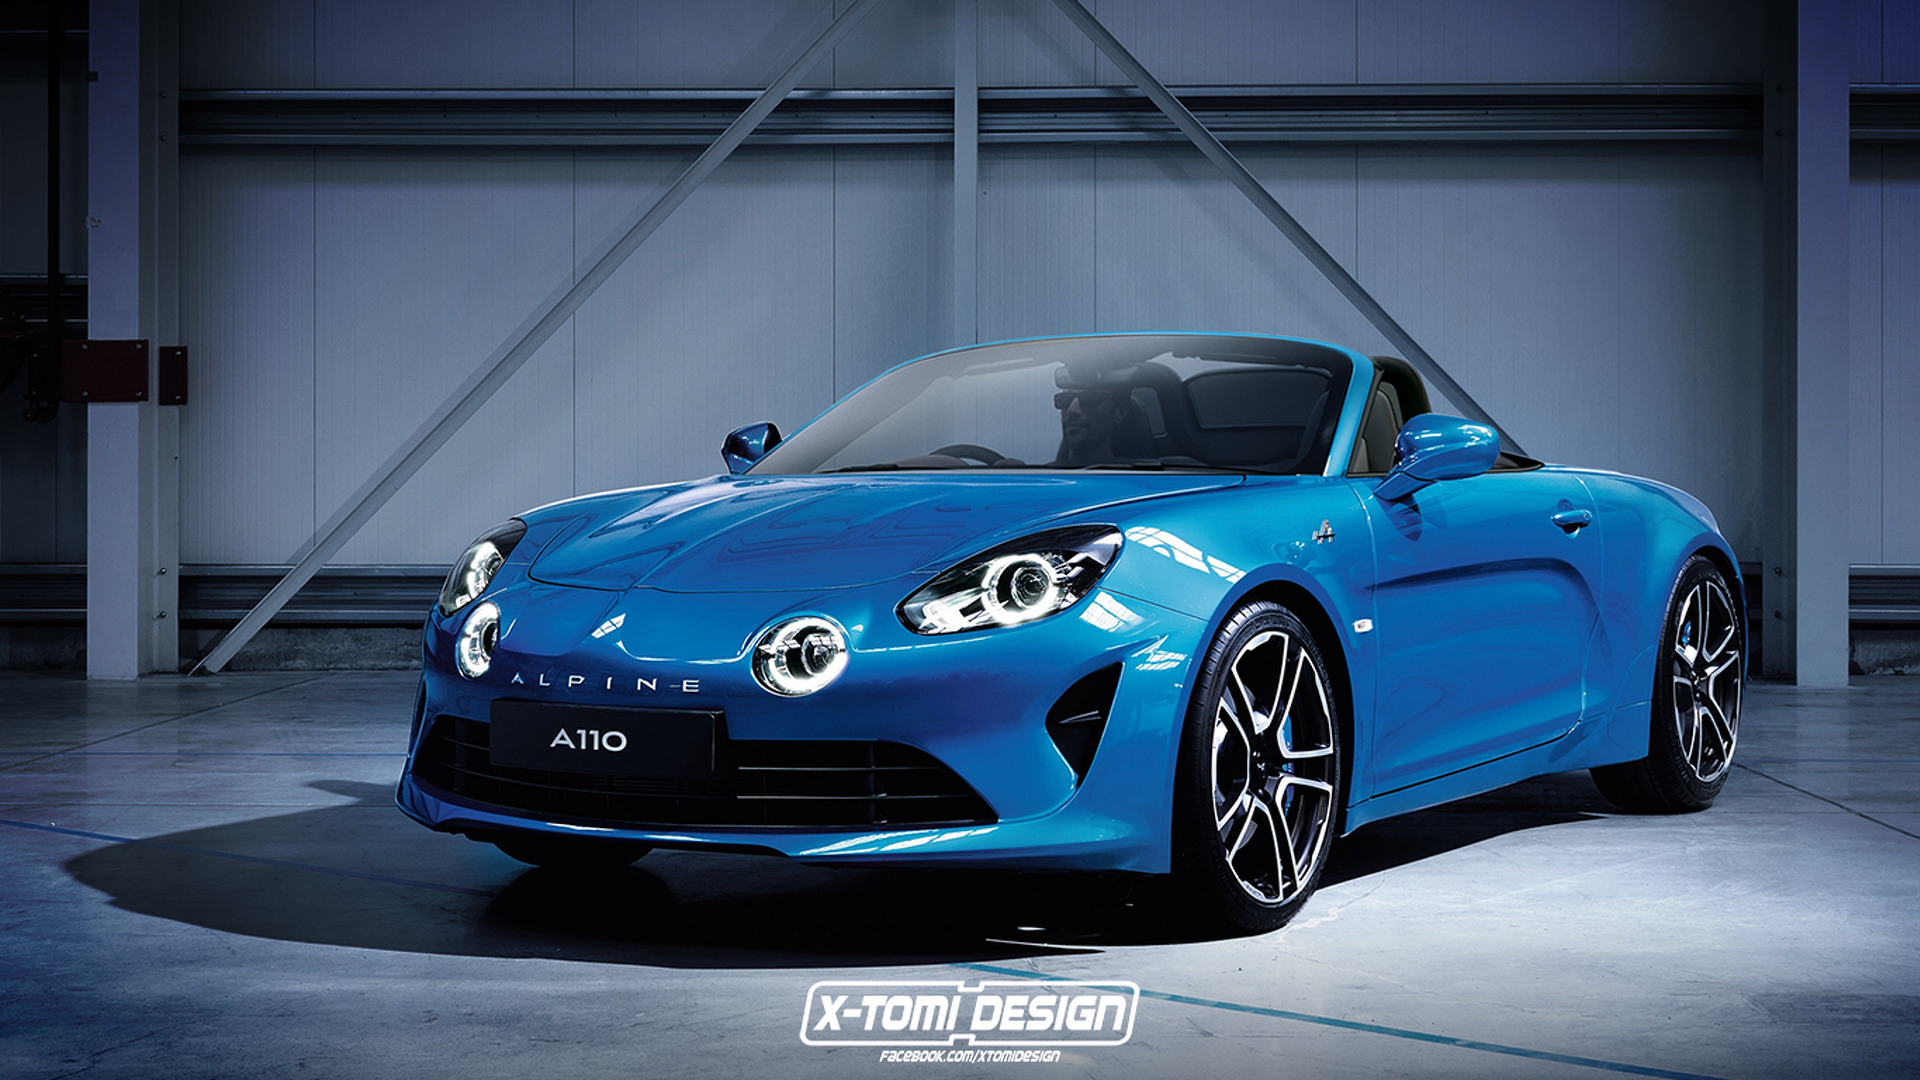 2017 alpine a110 as1 page 37. Black Bedroom Furniture Sets. Home Design Ideas